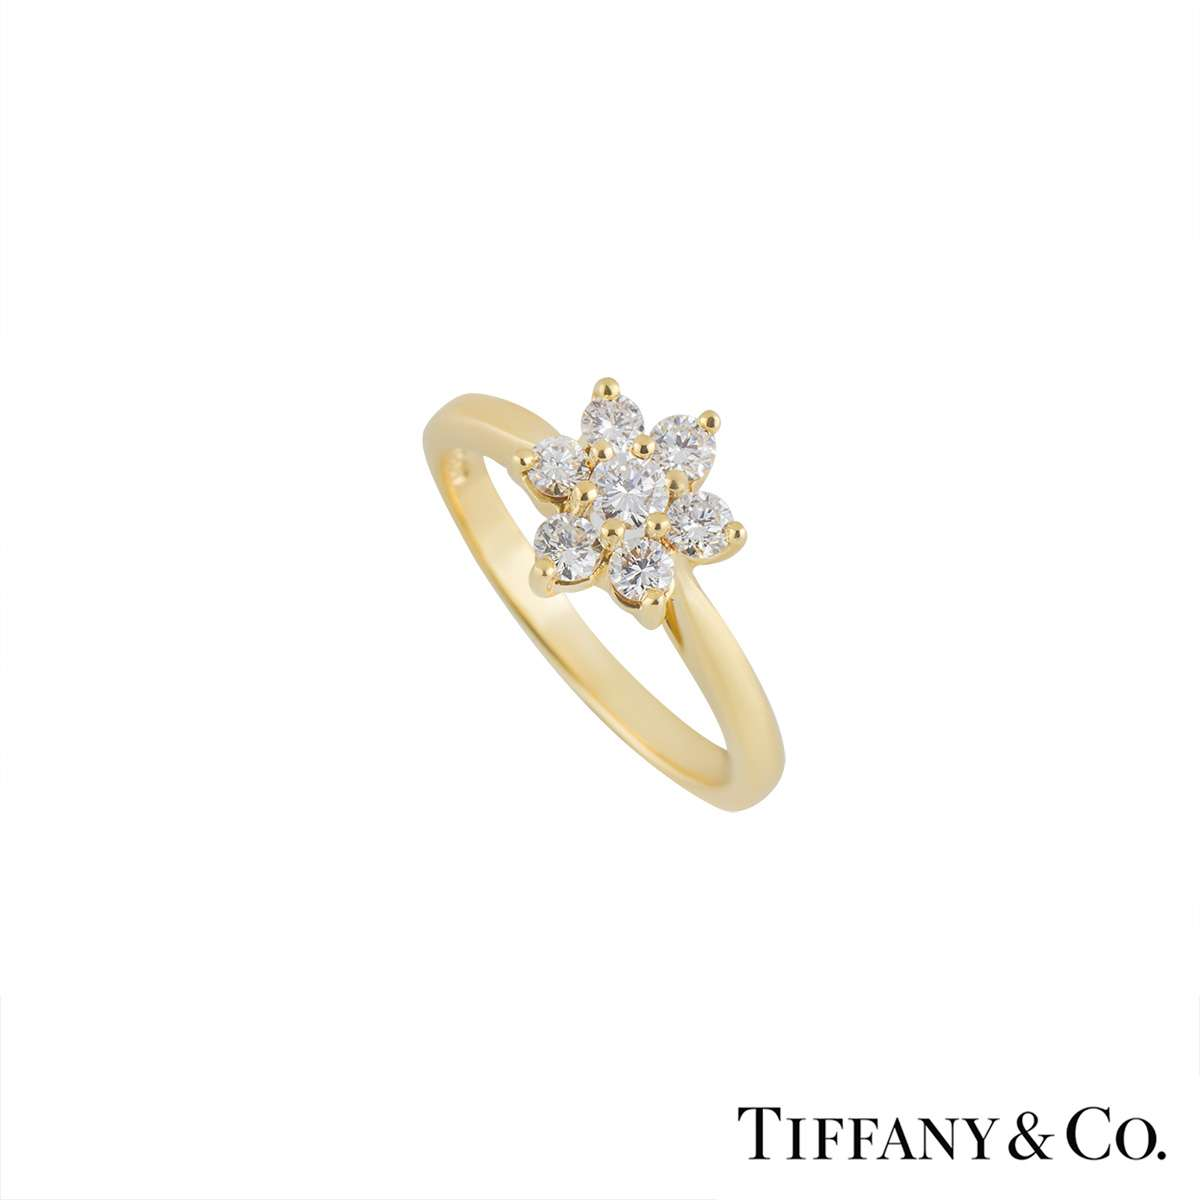 Tiffany & Co 18k Yellow Gold Diamond Flower Ring 0.47ct - Rich ...